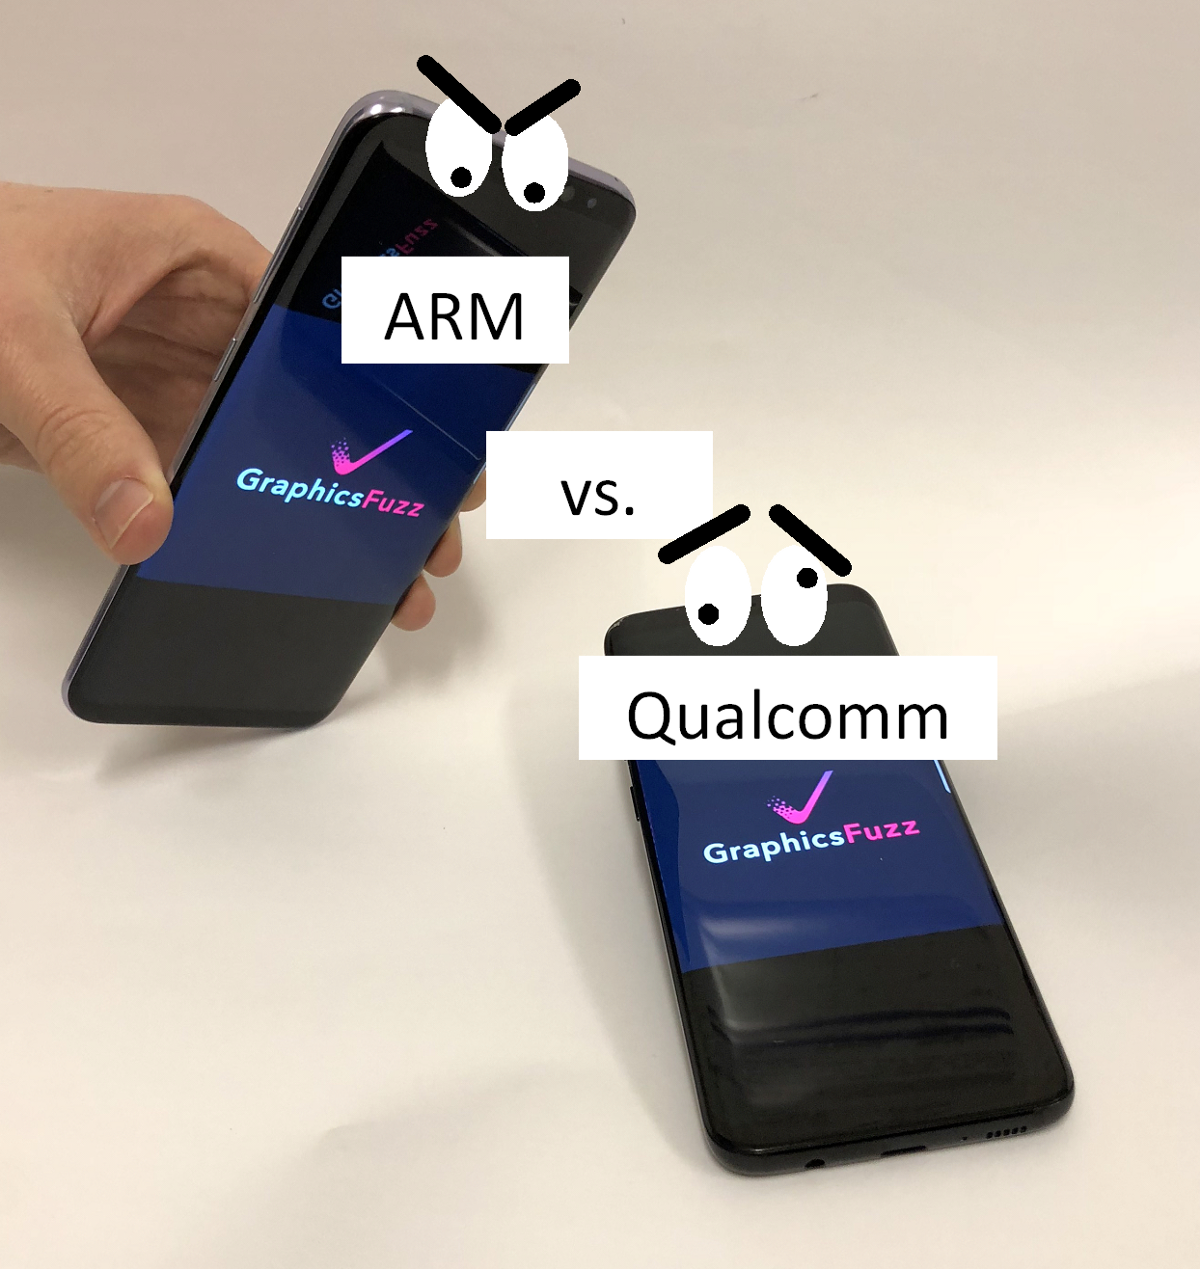 A tale of two Samsungs: ARM vs. Qualcomm in Android graphics